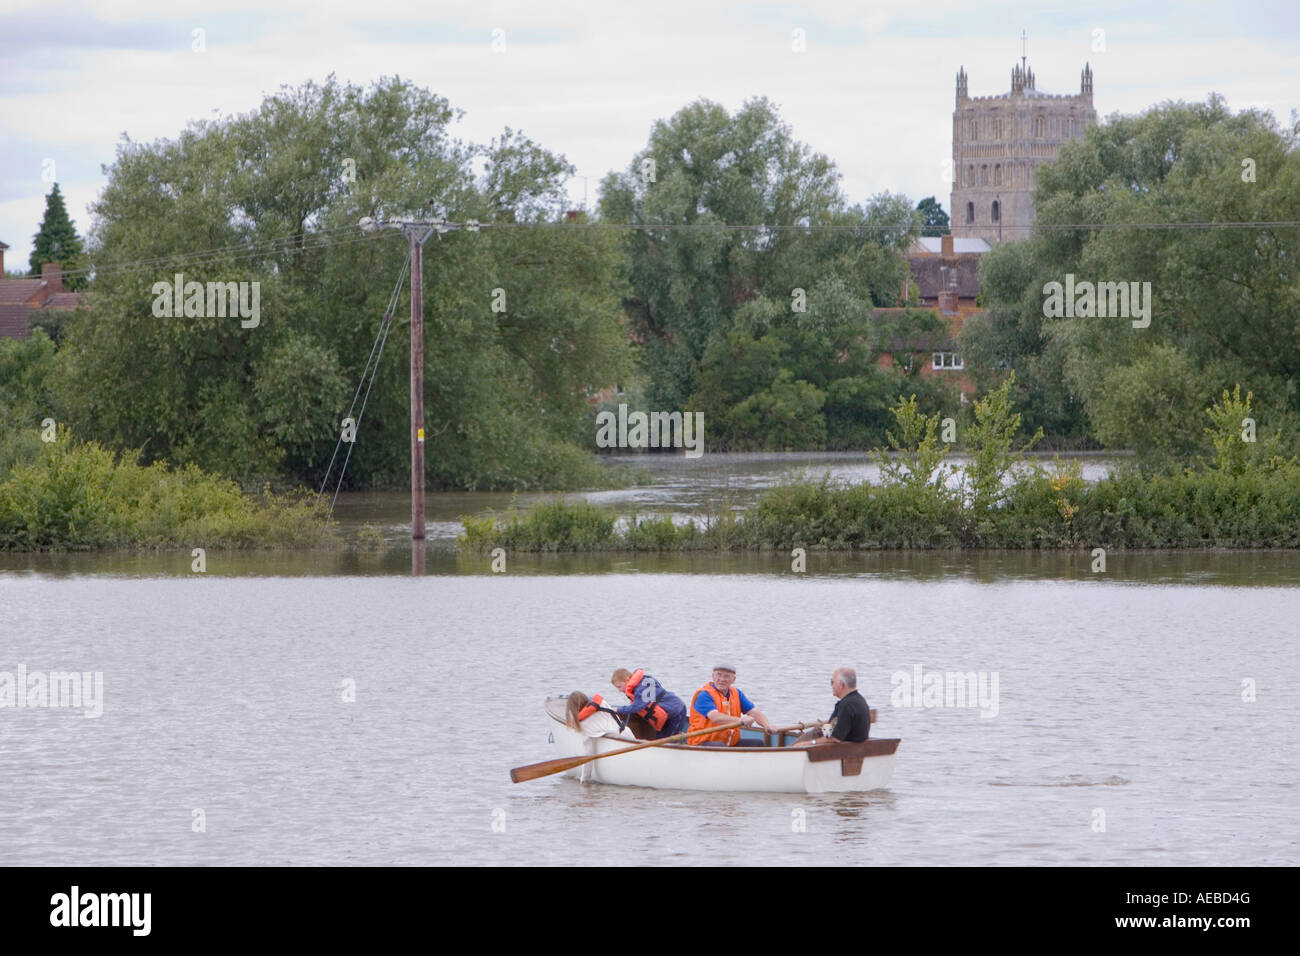 Residents escaping the flooding in Tewkesbury - Stock Image